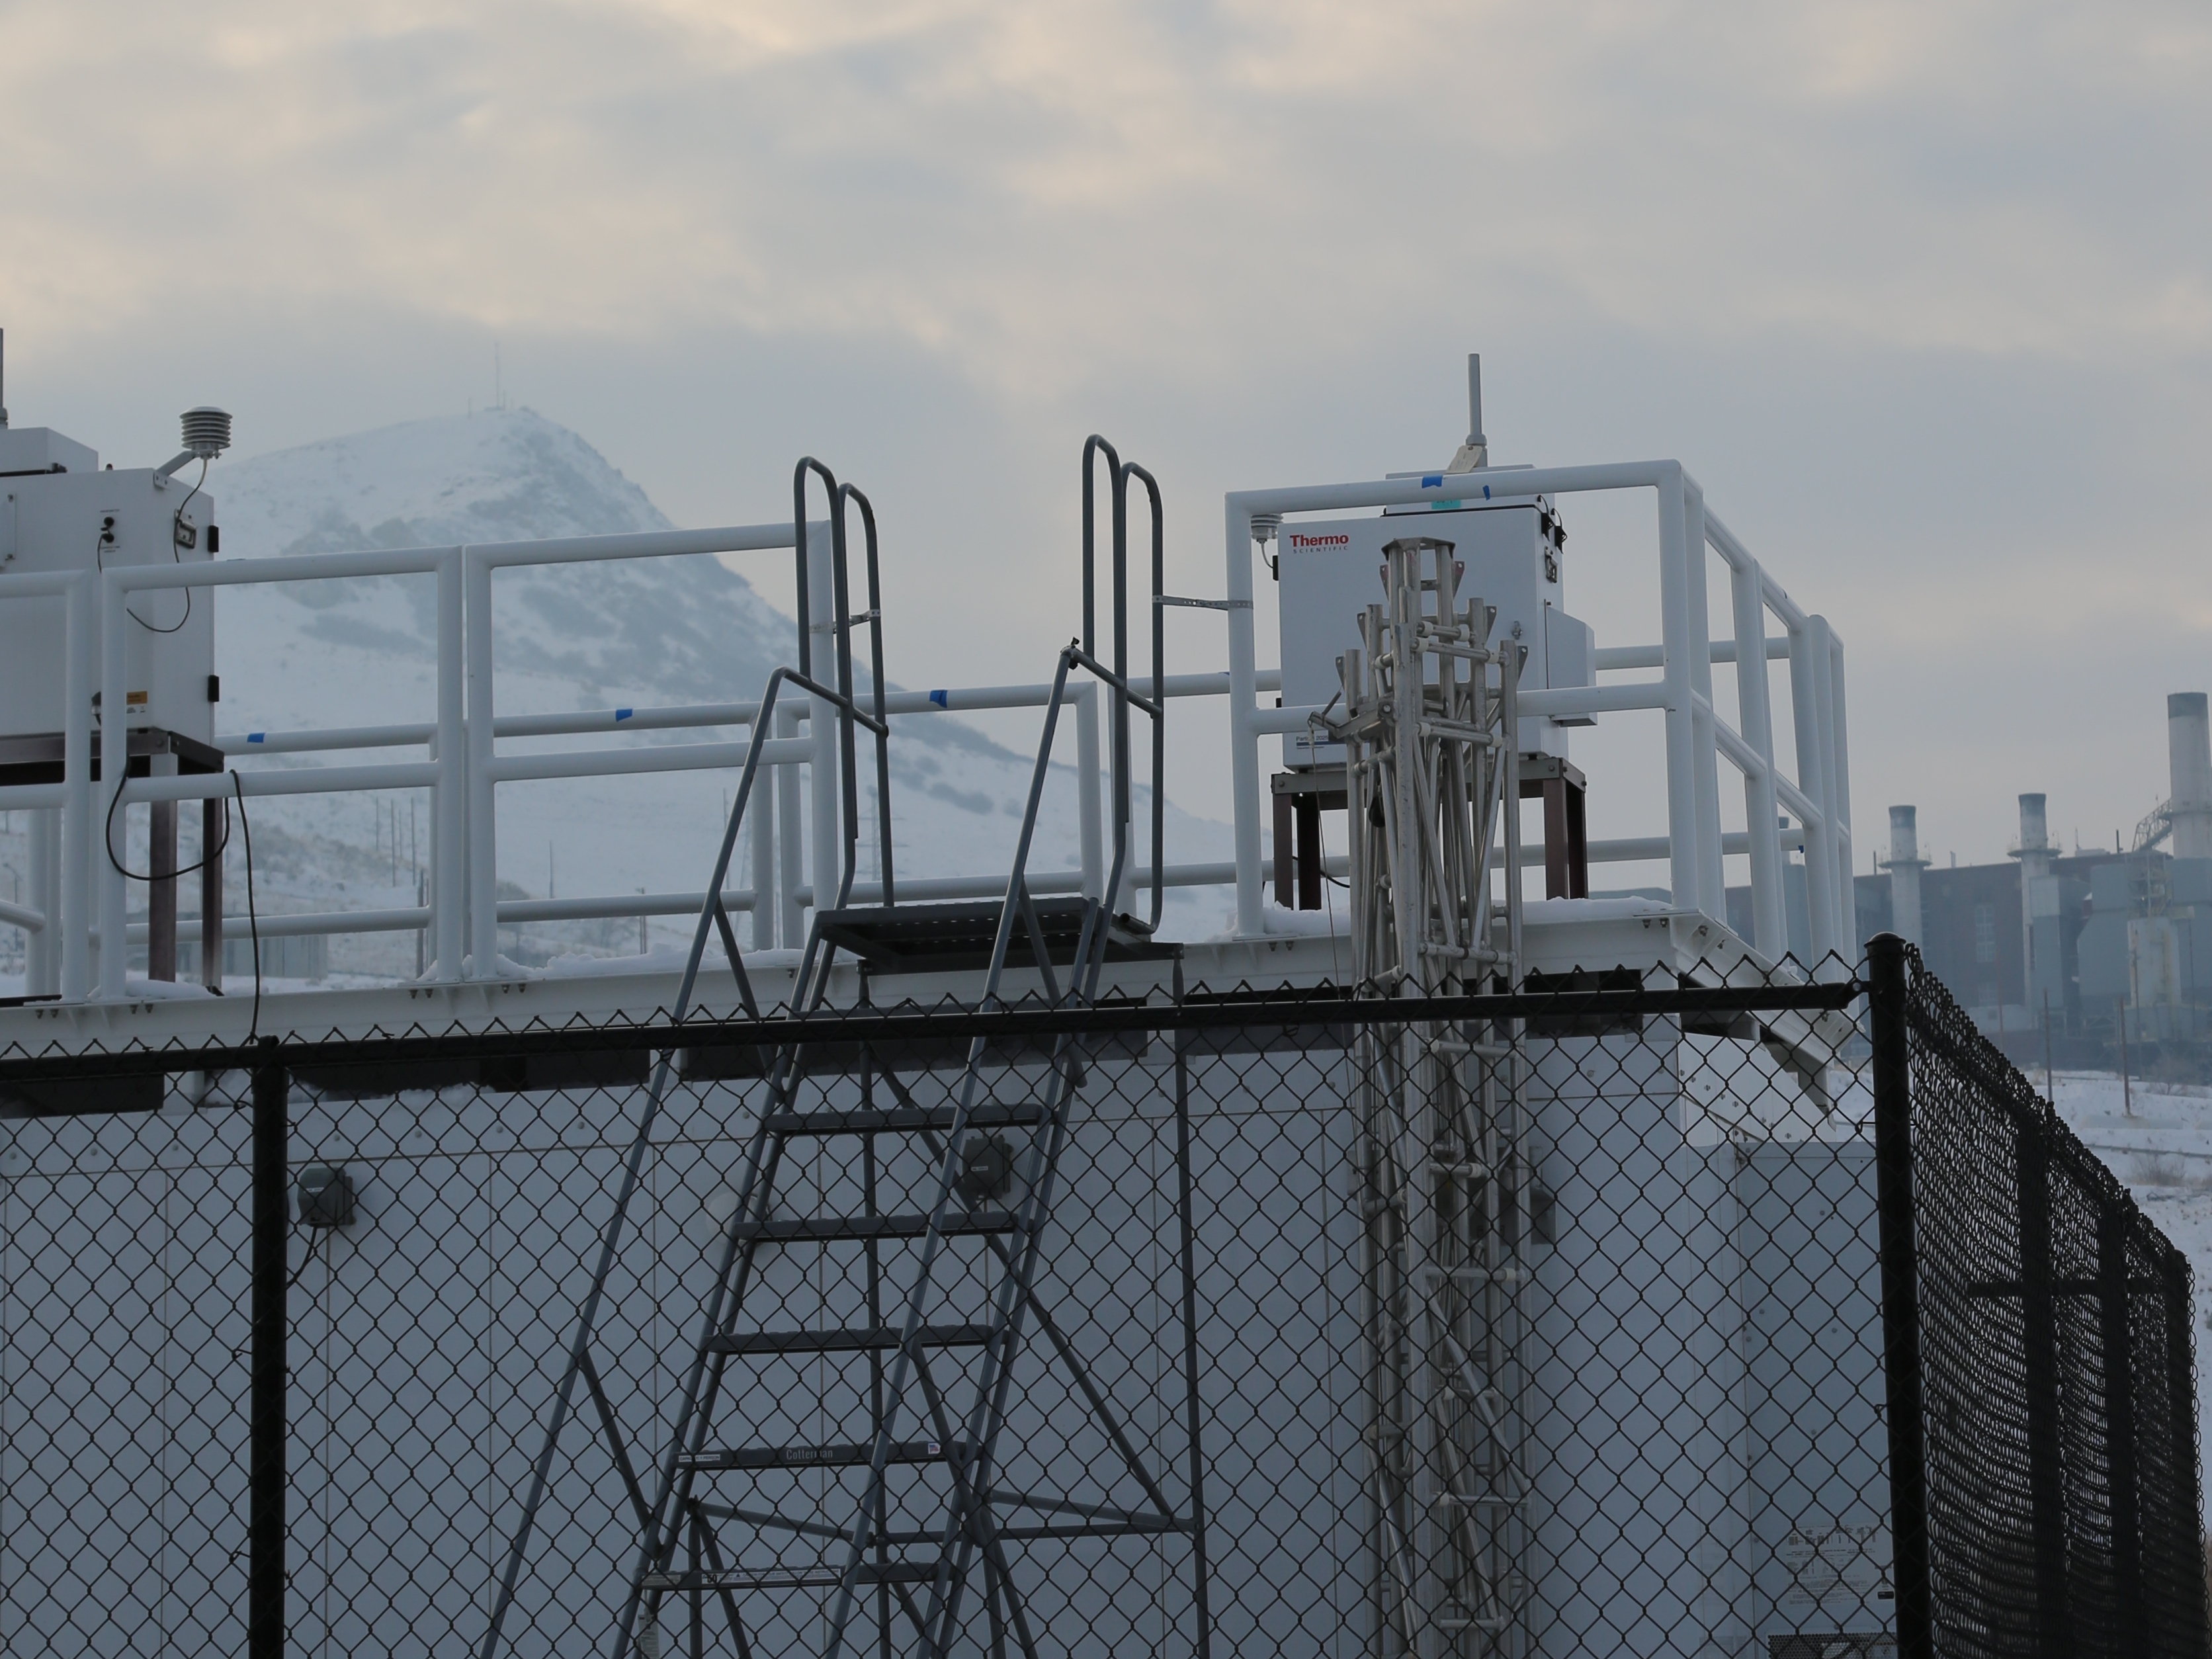 Utah is adding two new air quality monitors in Salt Lake County